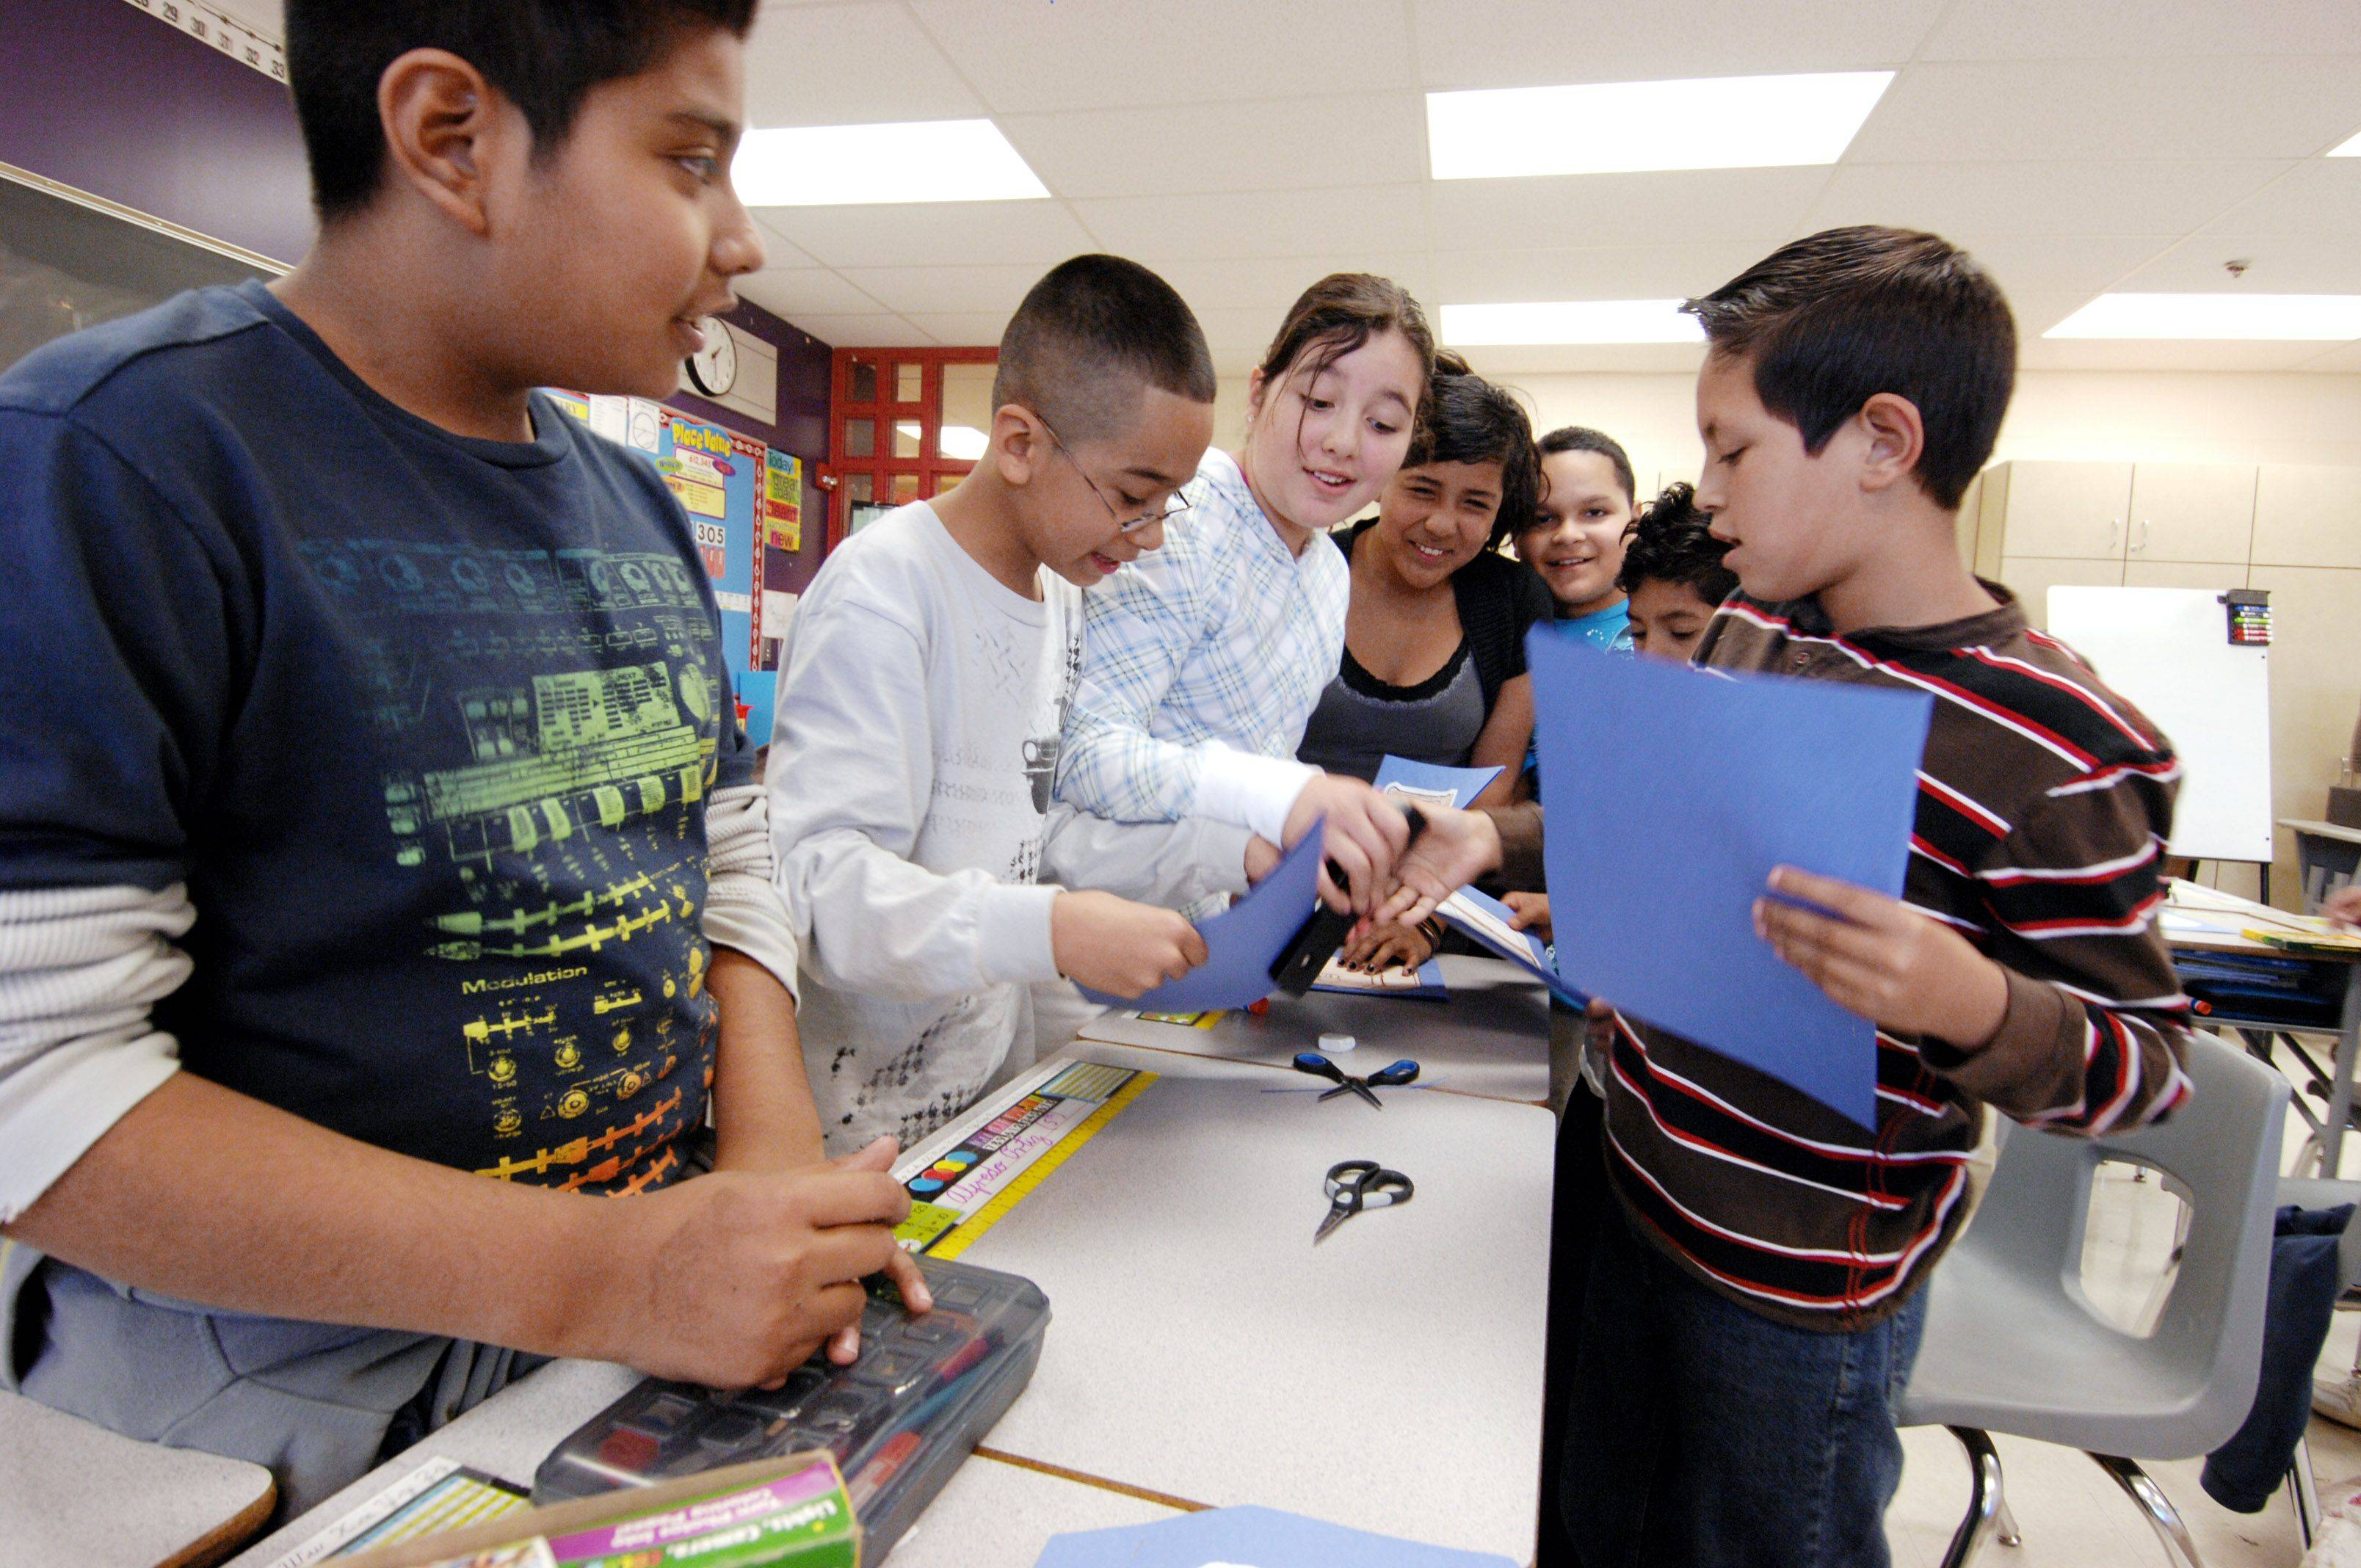 Students in an English Language Learners class at Timber Trails Elementary School in Hoffman Estates work on a project.